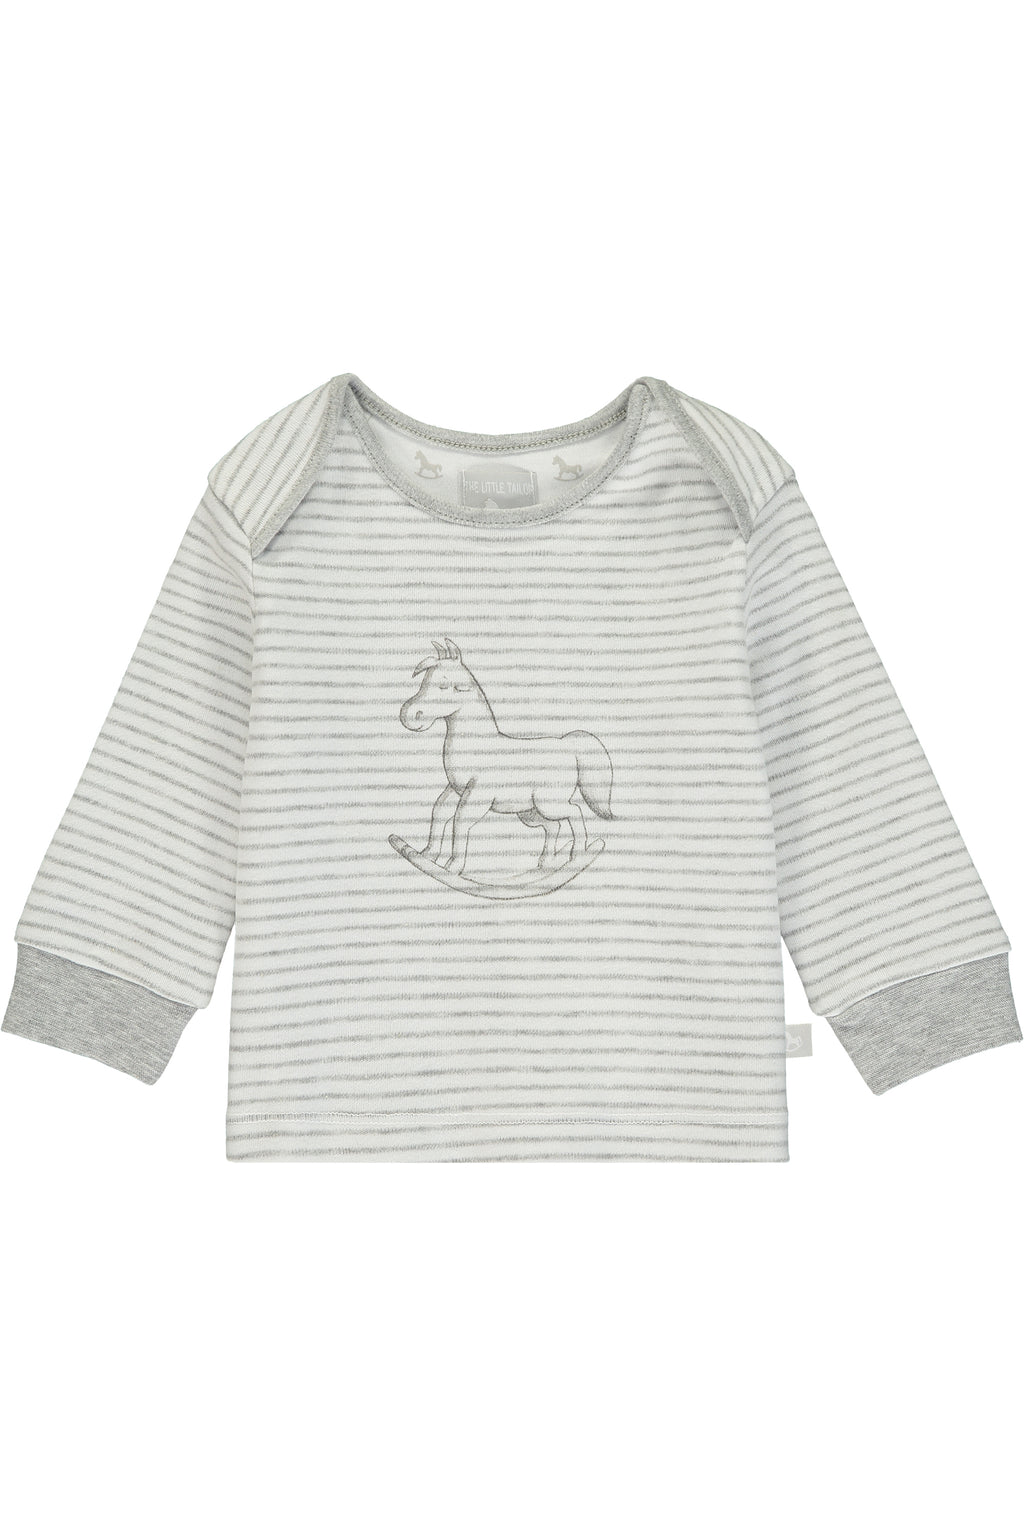 Super Soft Jersey Striped Rocking Horse Top - white